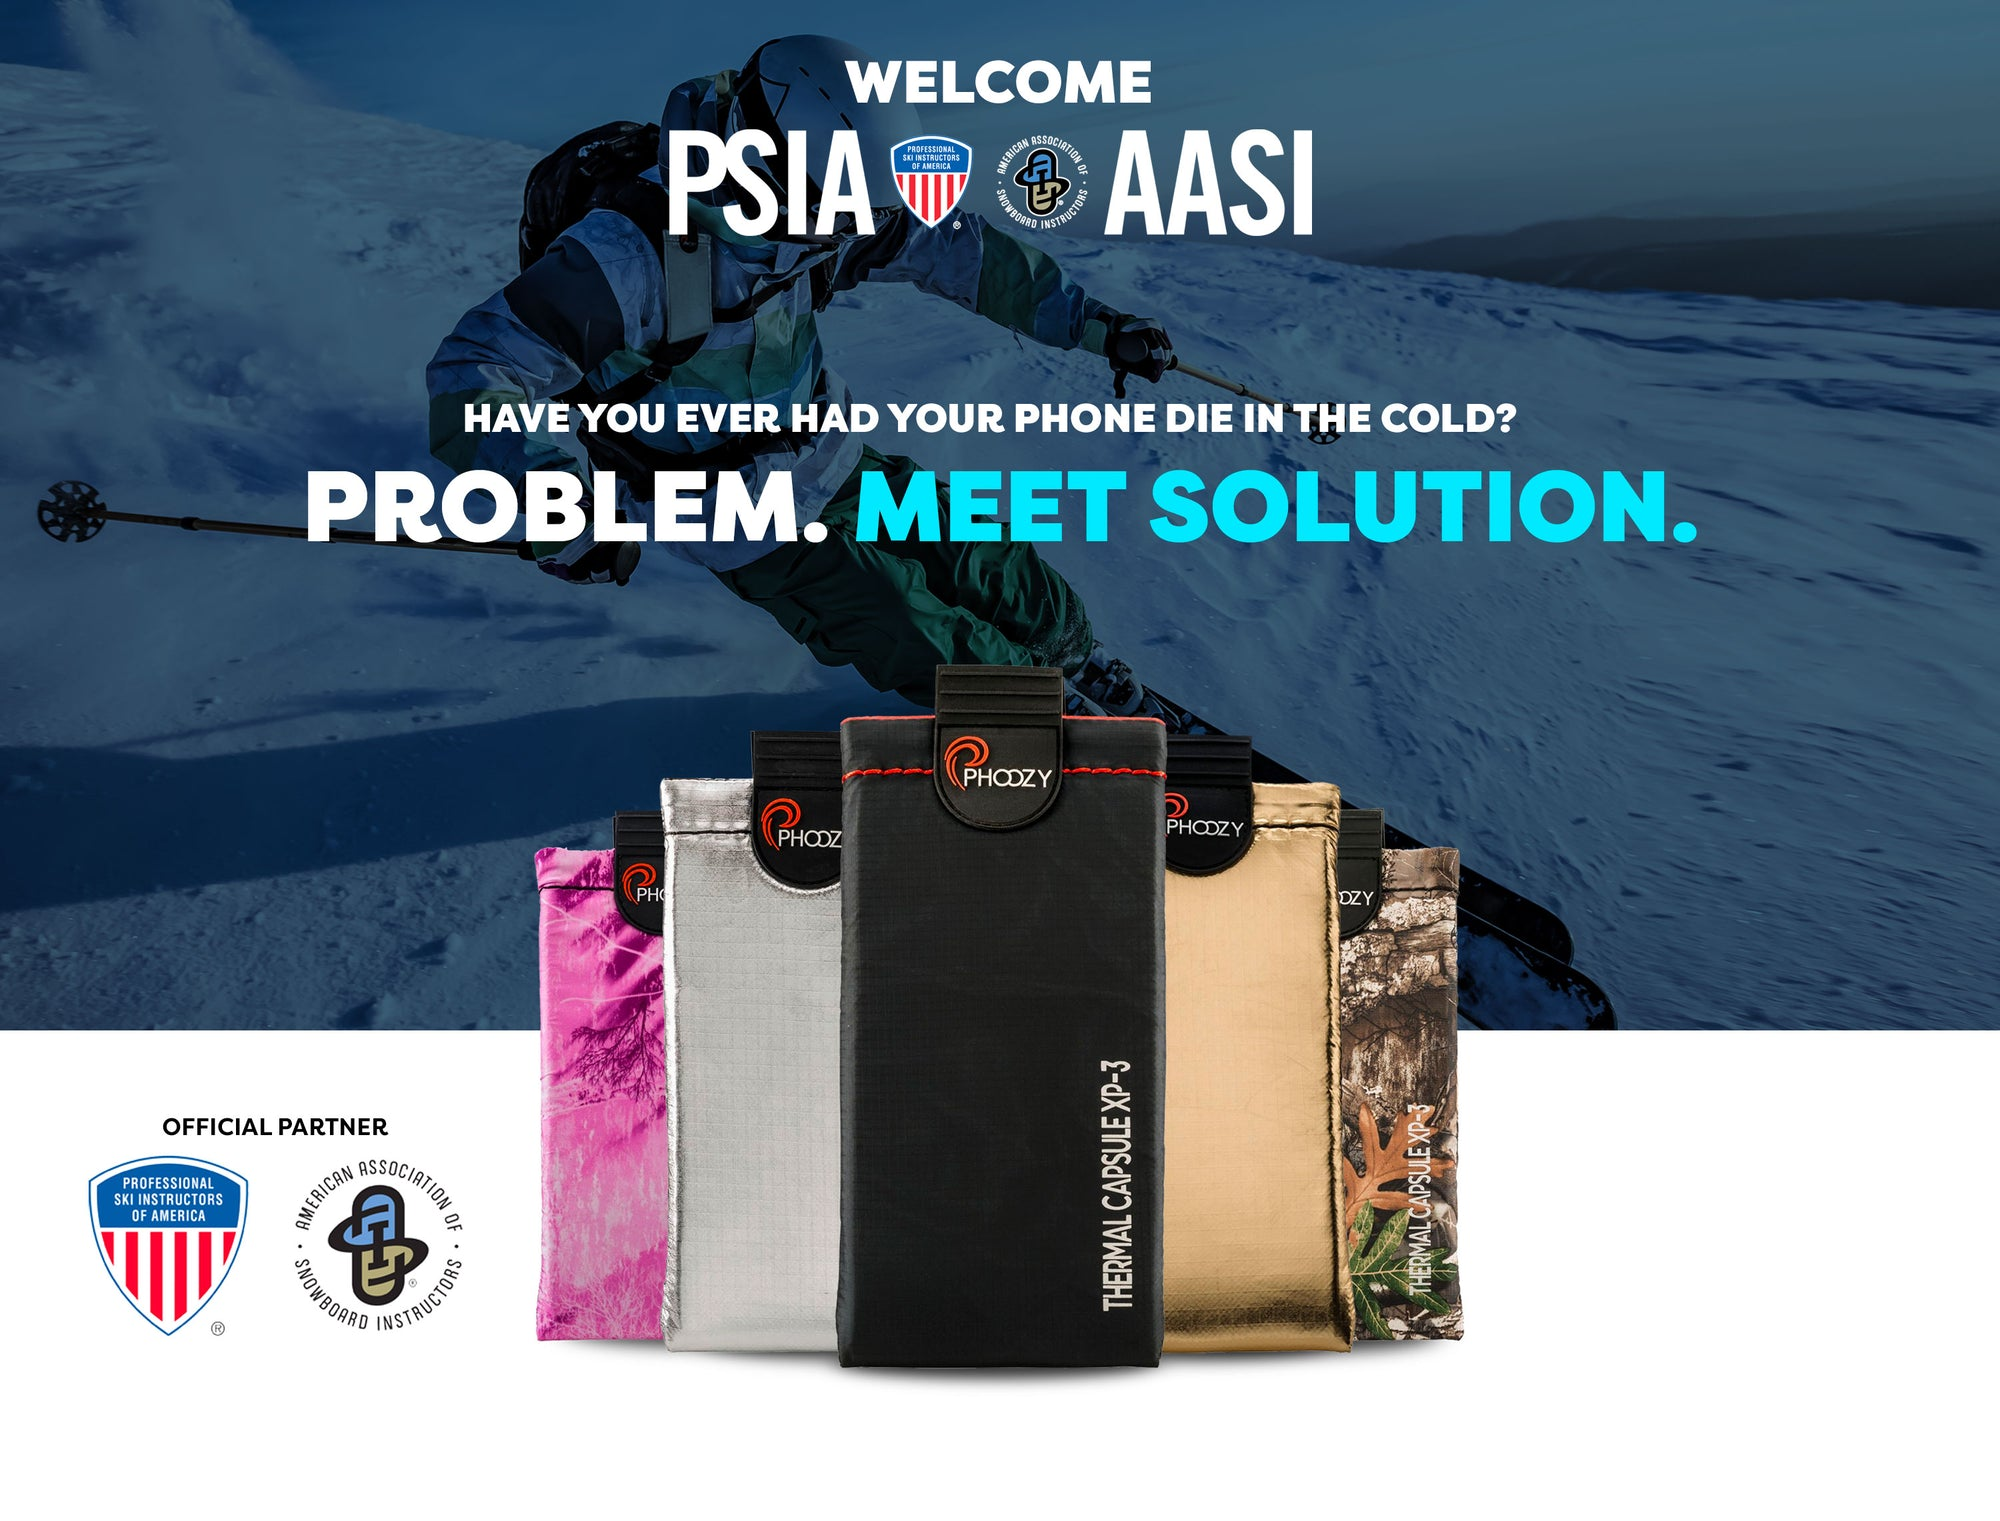 Official Phone Protection of PSIA and AASI